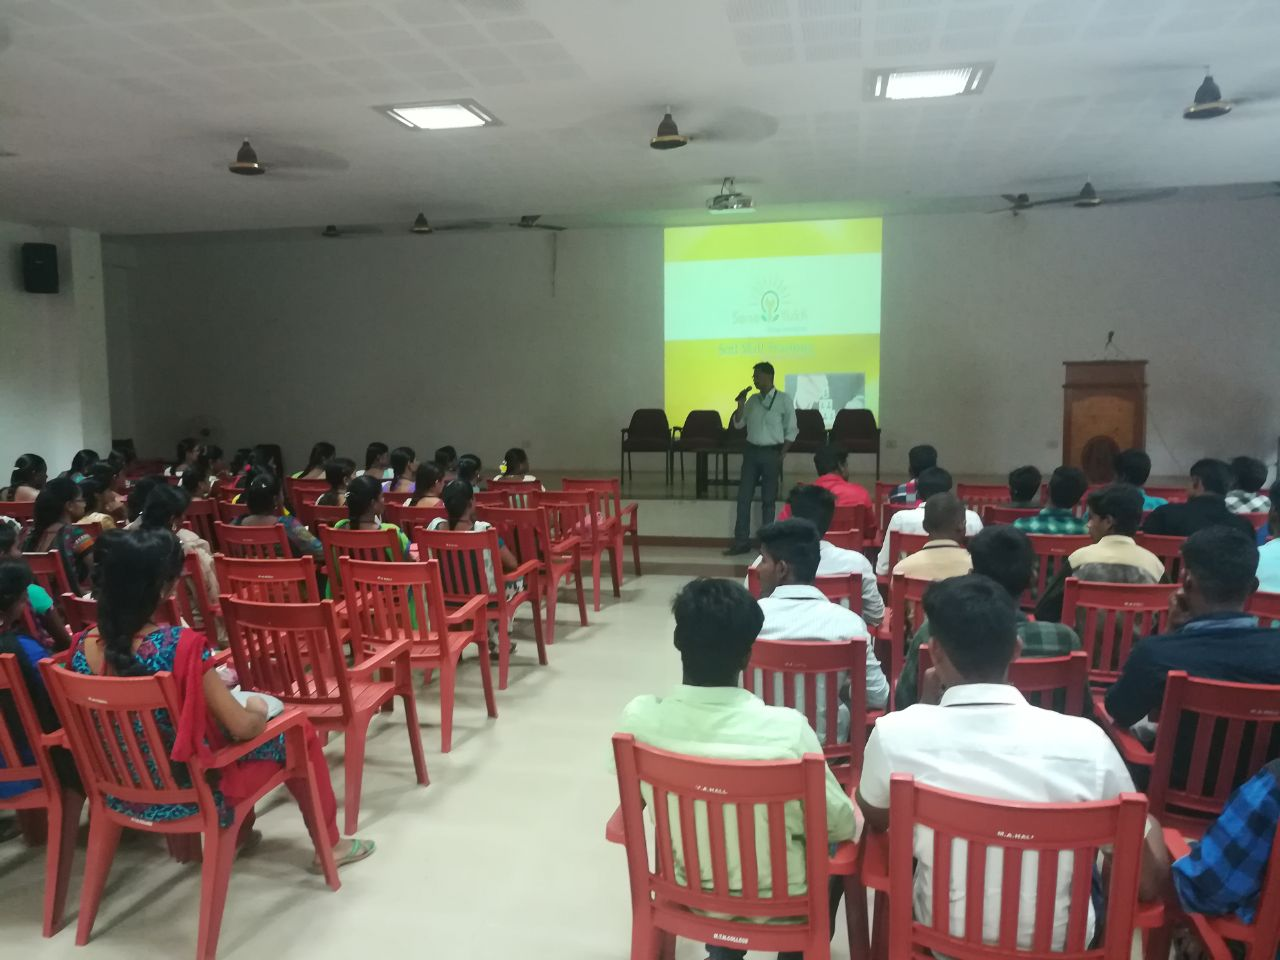 Sona Yukti soft skills training at the Mannar Thirumalai  Naicker College